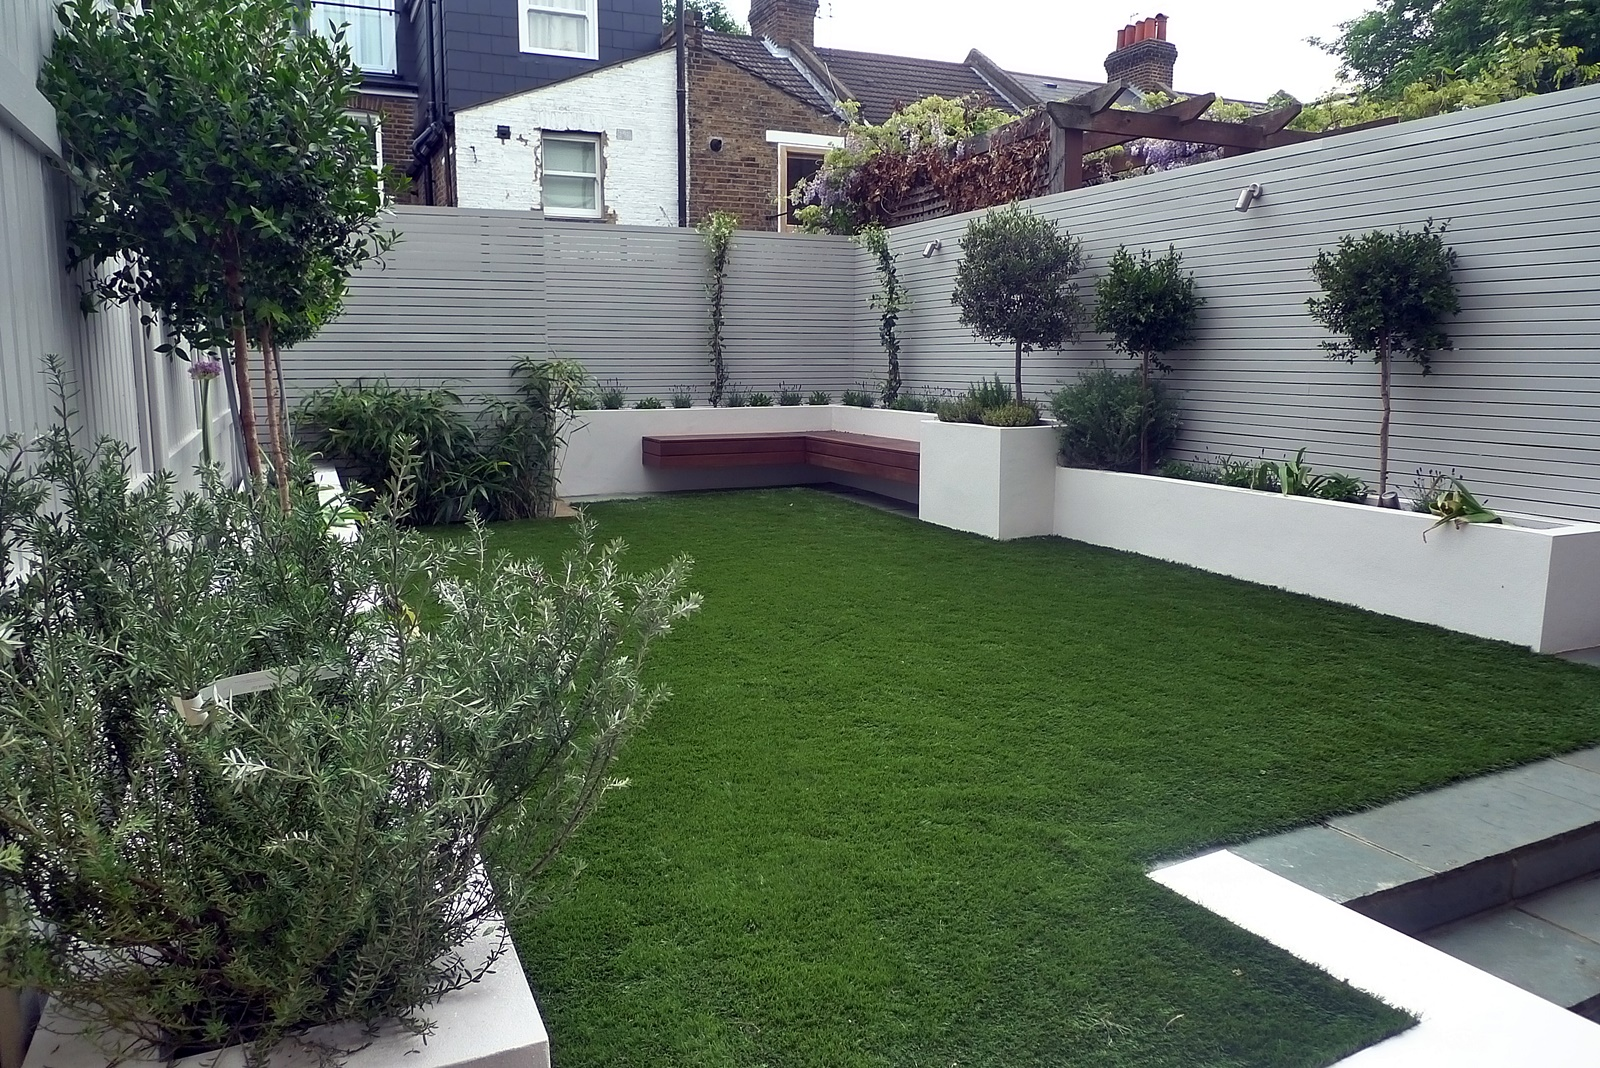 London garden blog london garden blog gardens from for Modern garden ideas